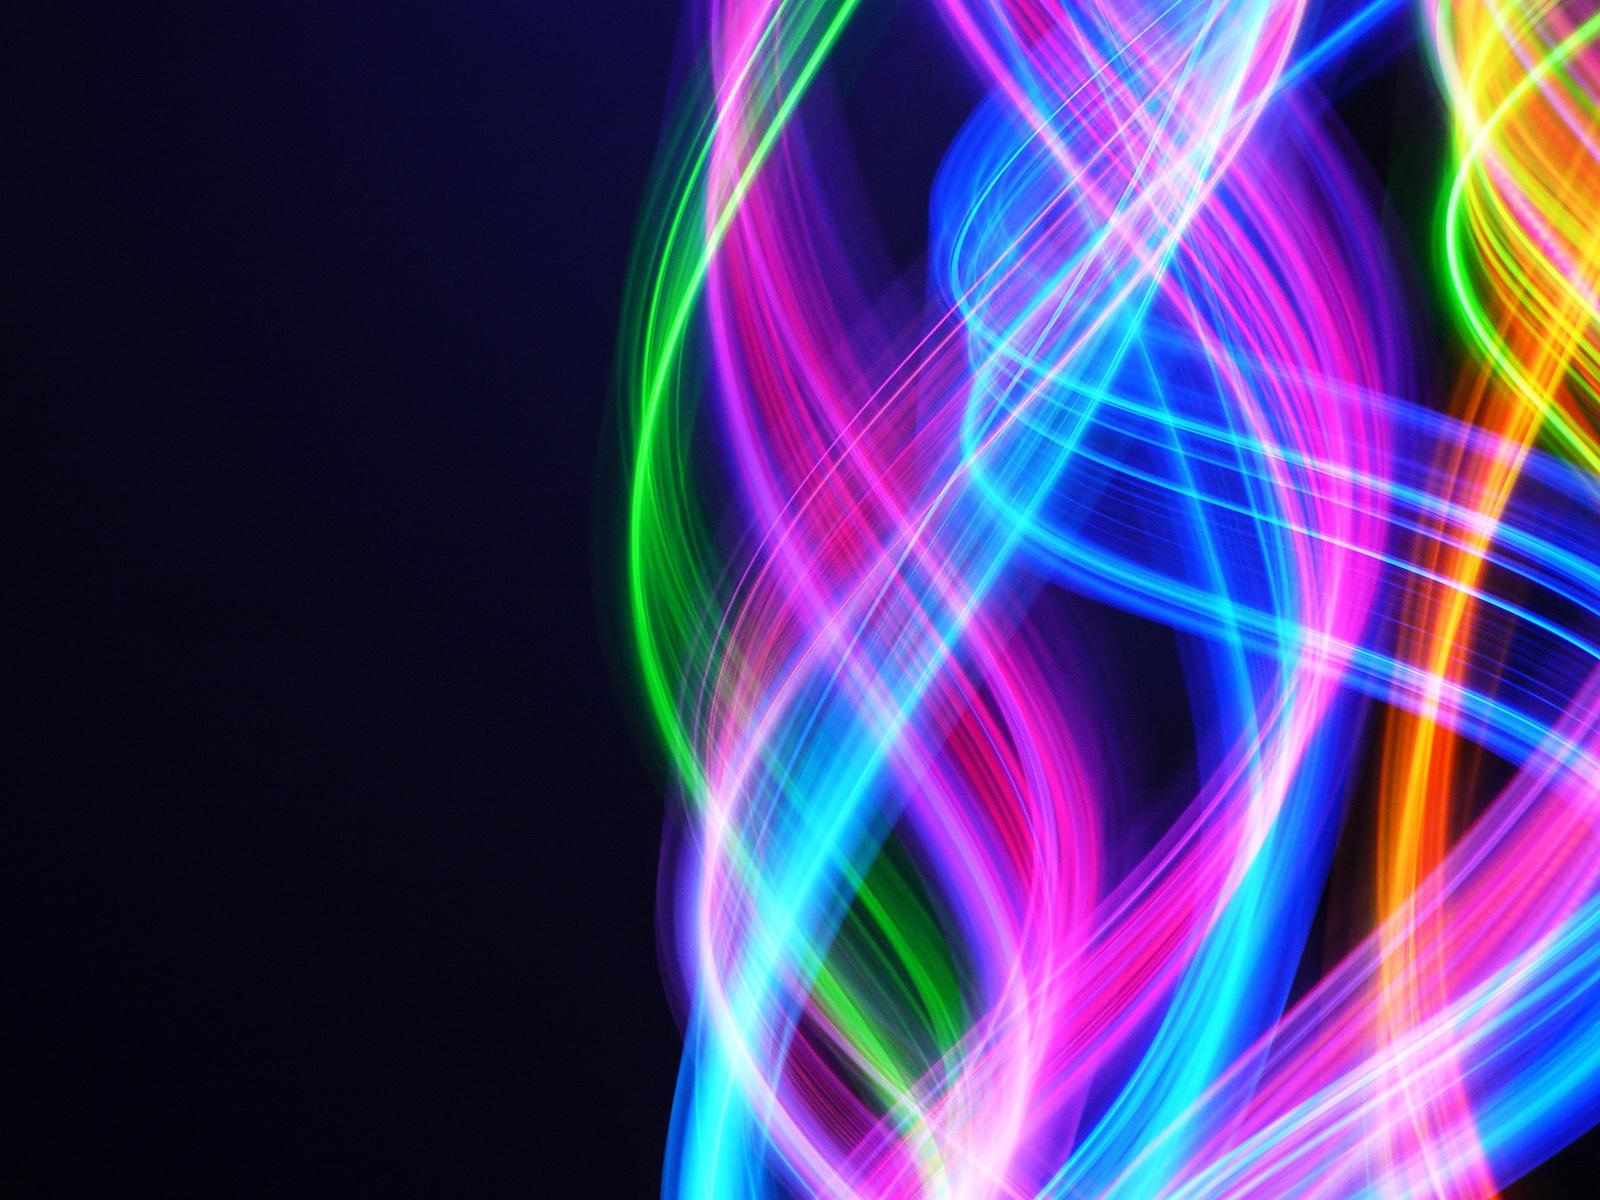 colorful abstract wallpapers description colorful abstract wallpapers 1600x1200